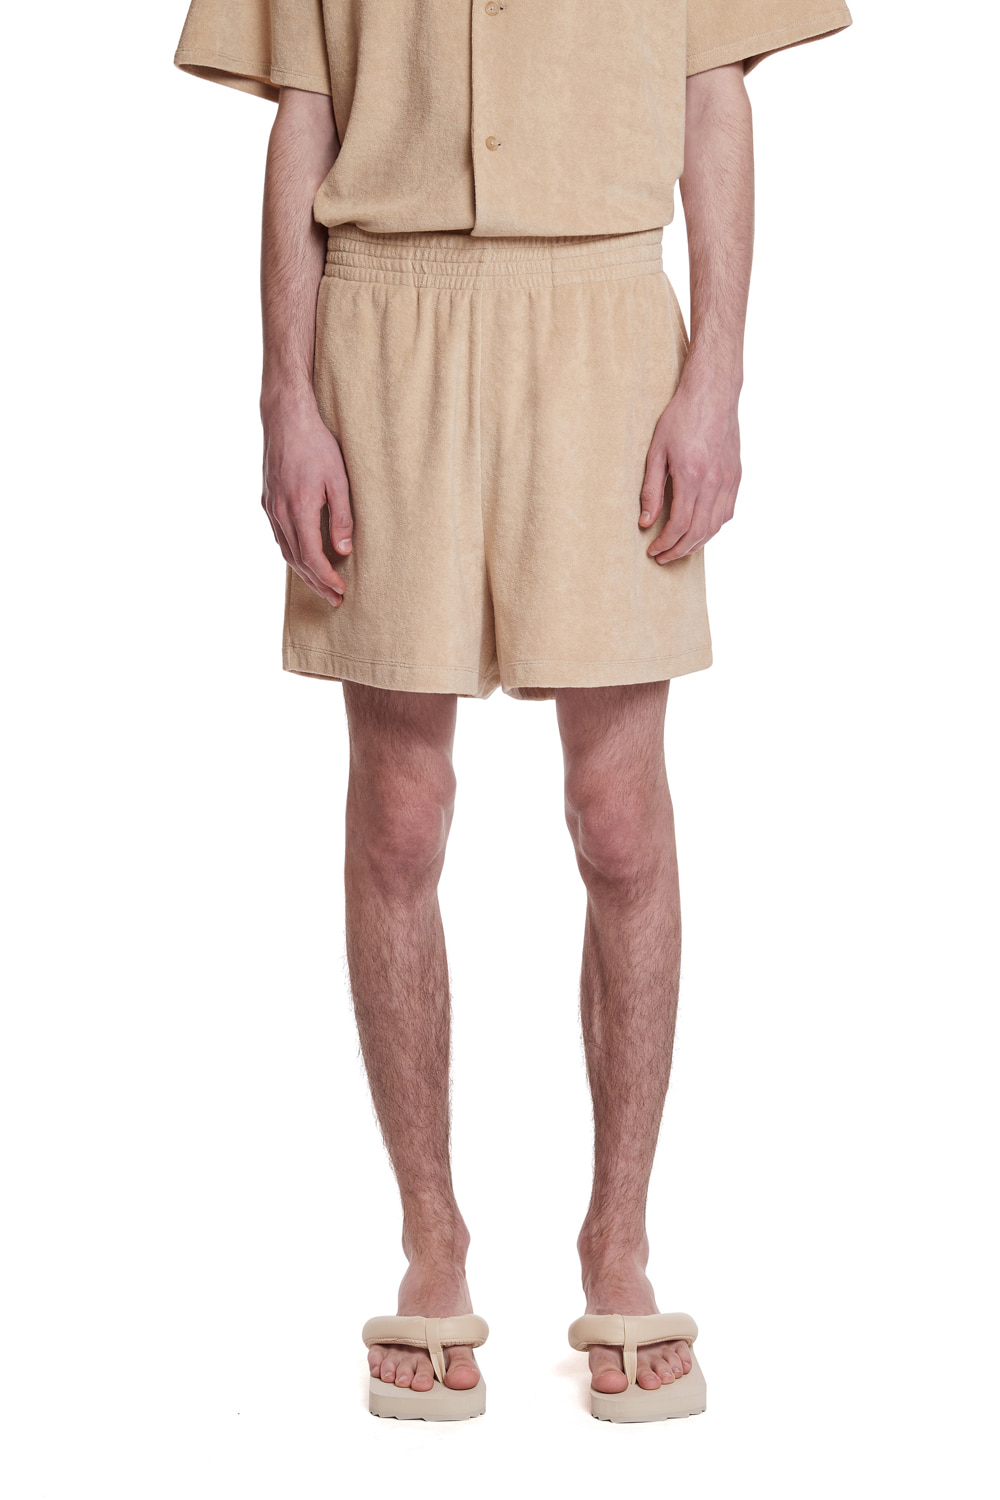 Terry Cotton Short Pant_(For man)